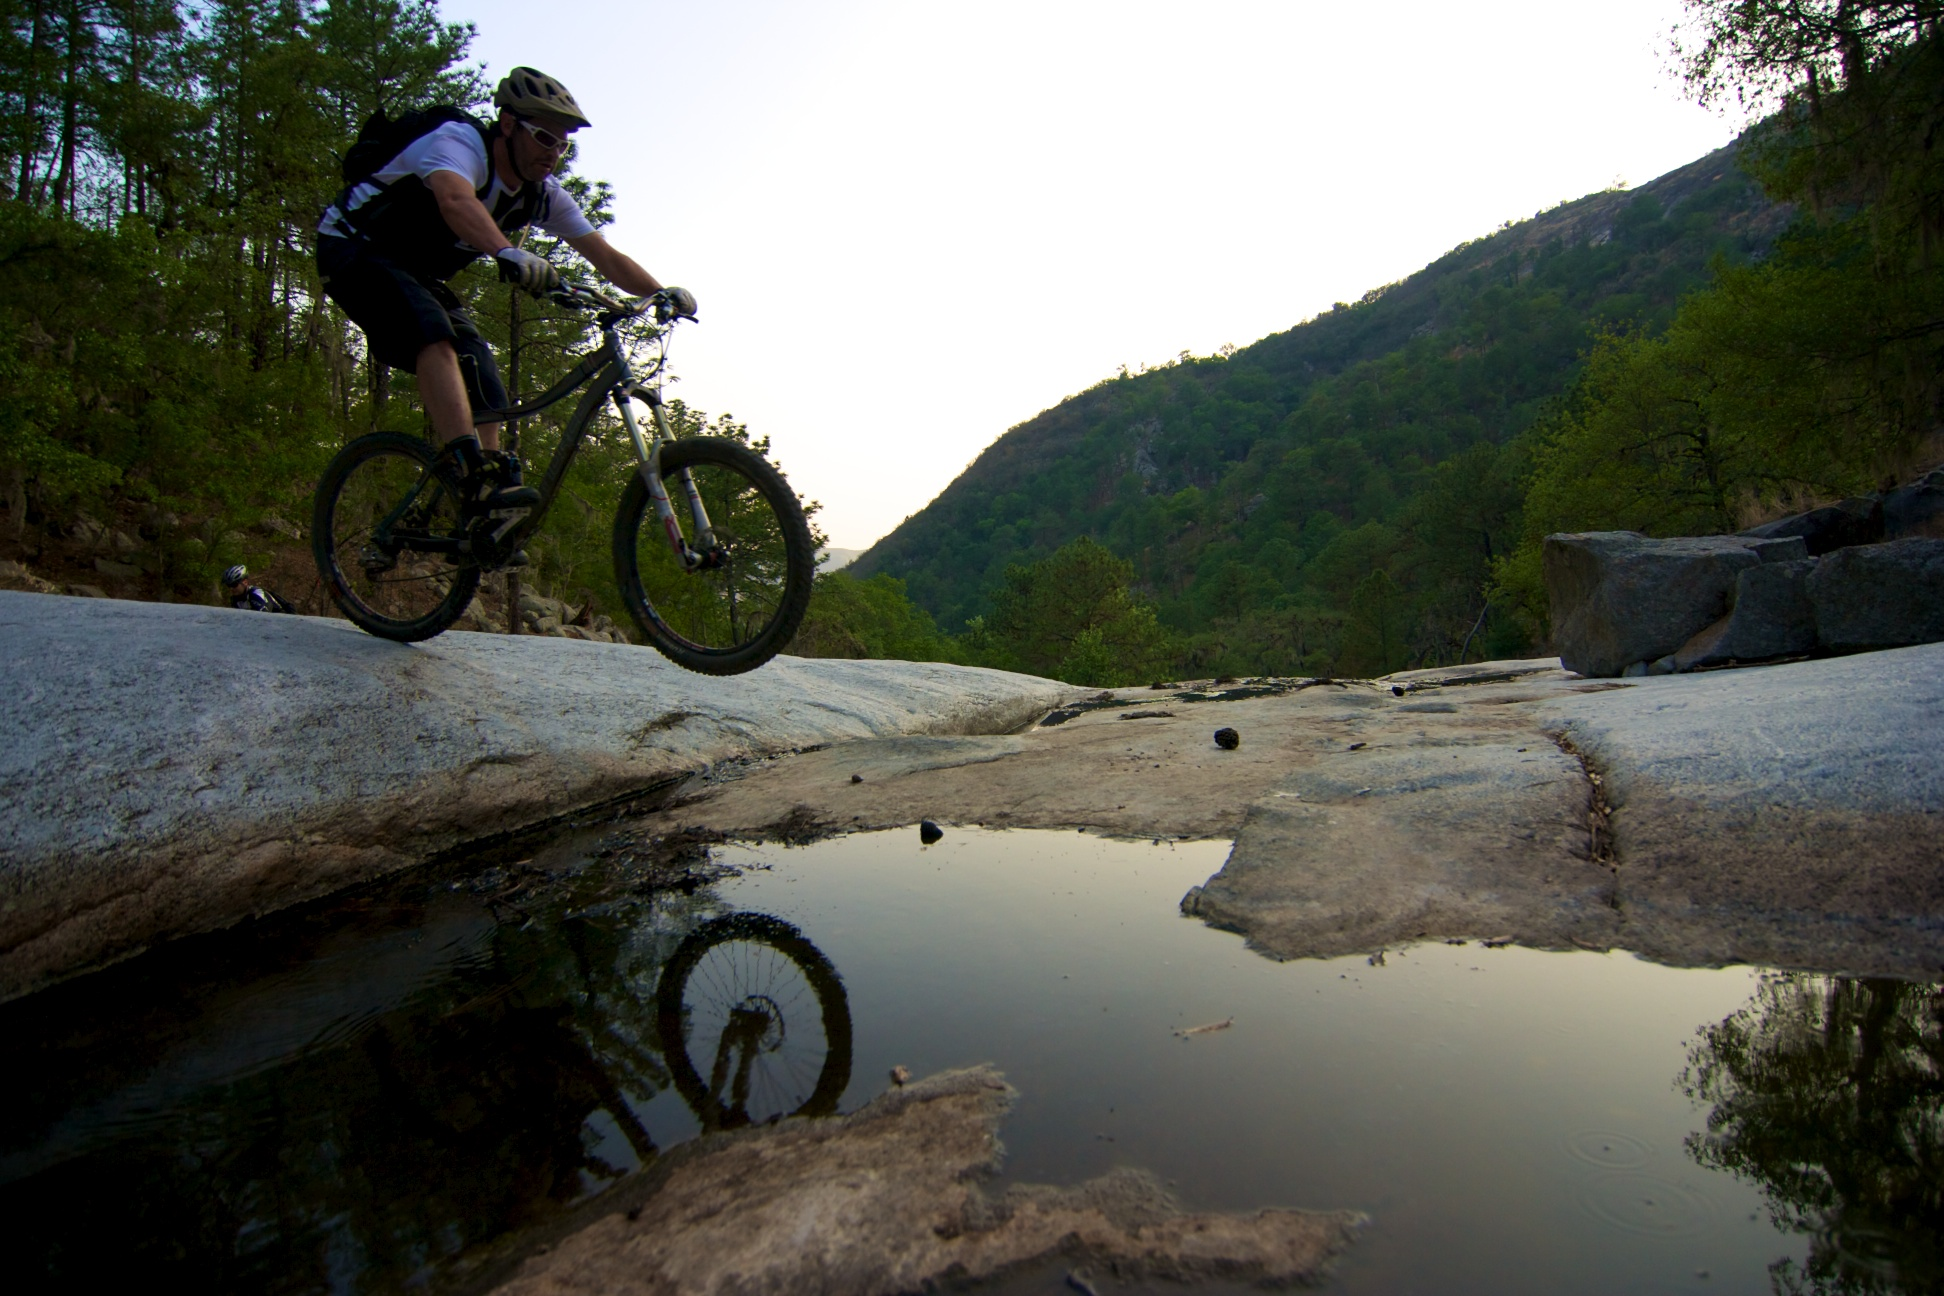 Mountainbiking in the region